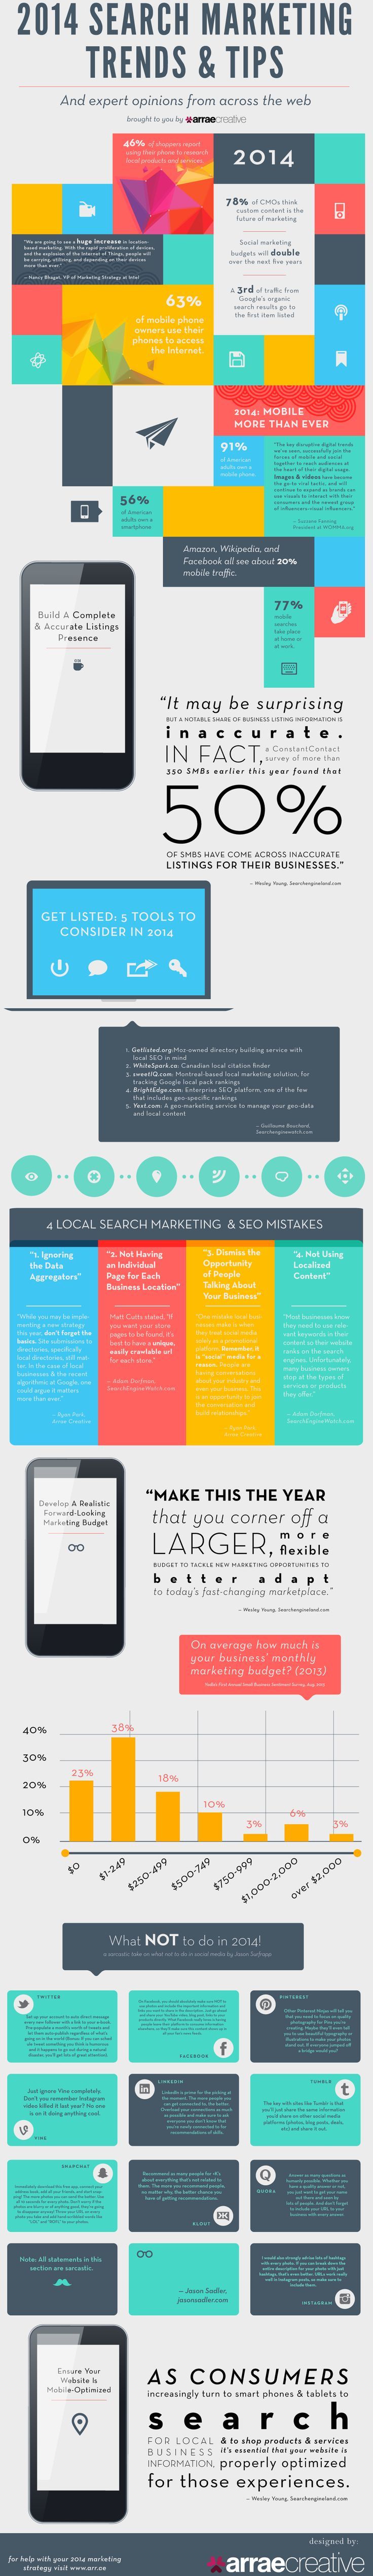 2014 Online Marketing Trends and Tips